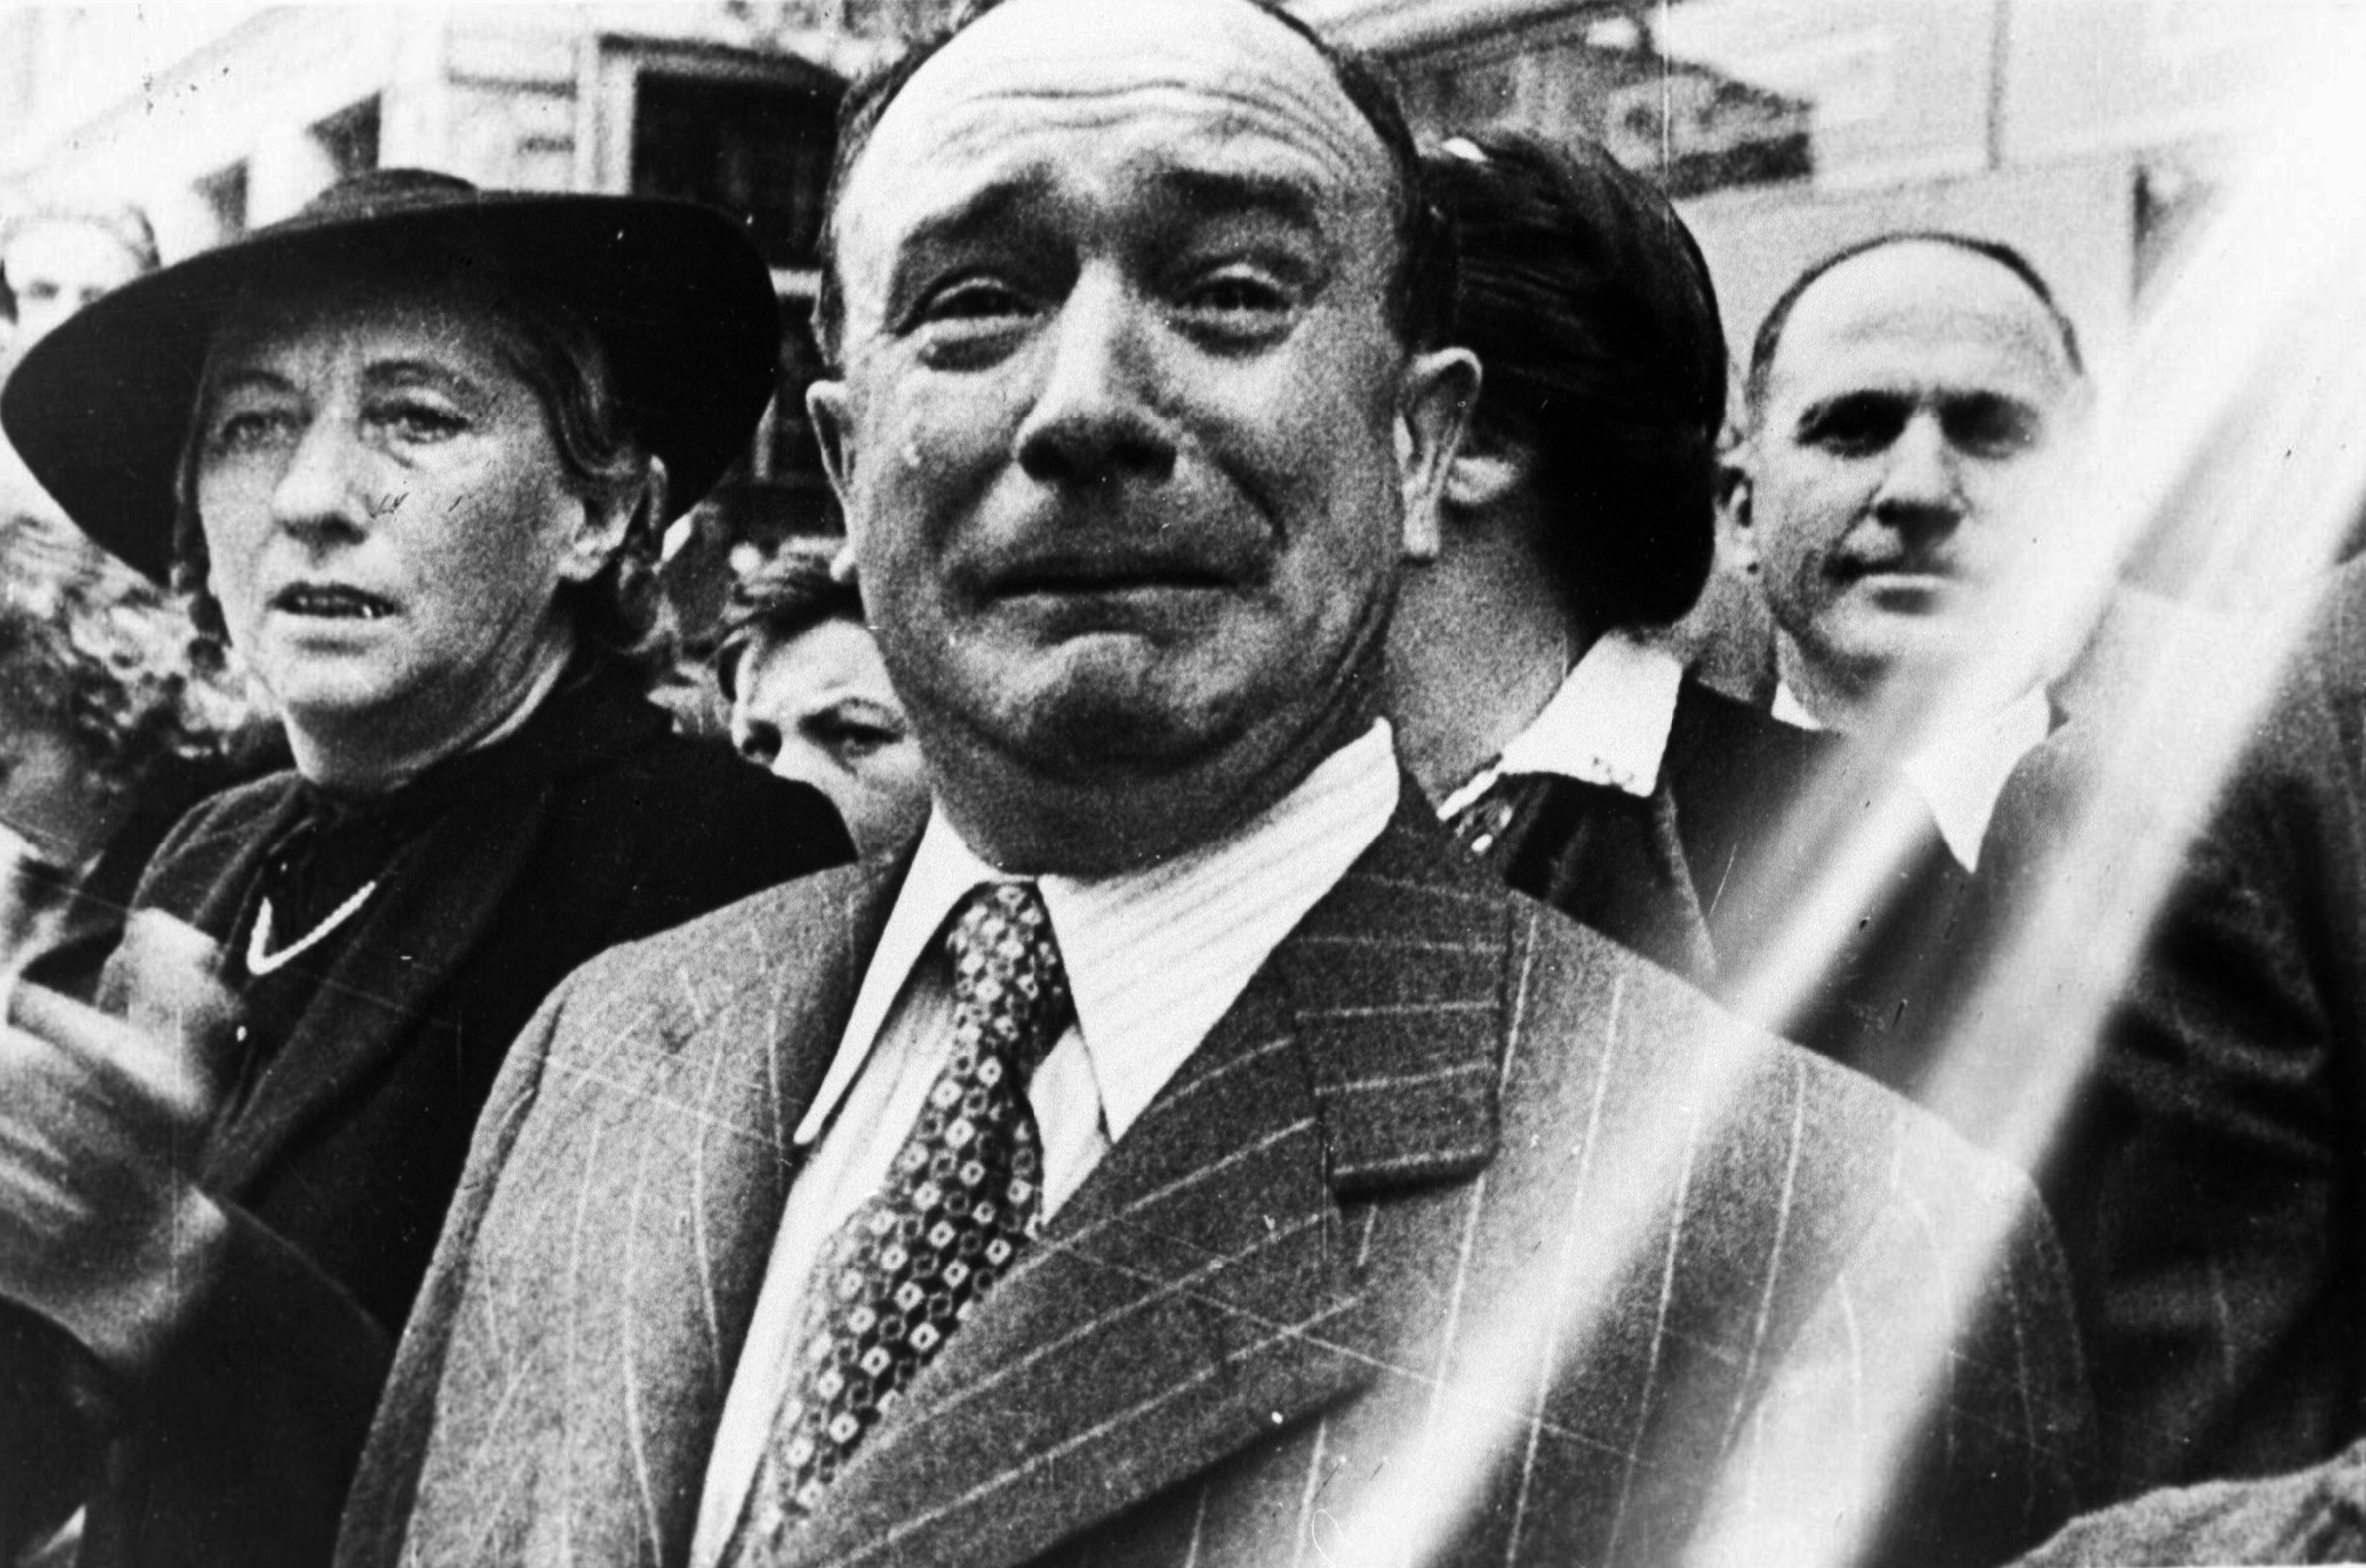 Iconic photo of the fall of France showing the raw emotion and sadness involved June 1940 01